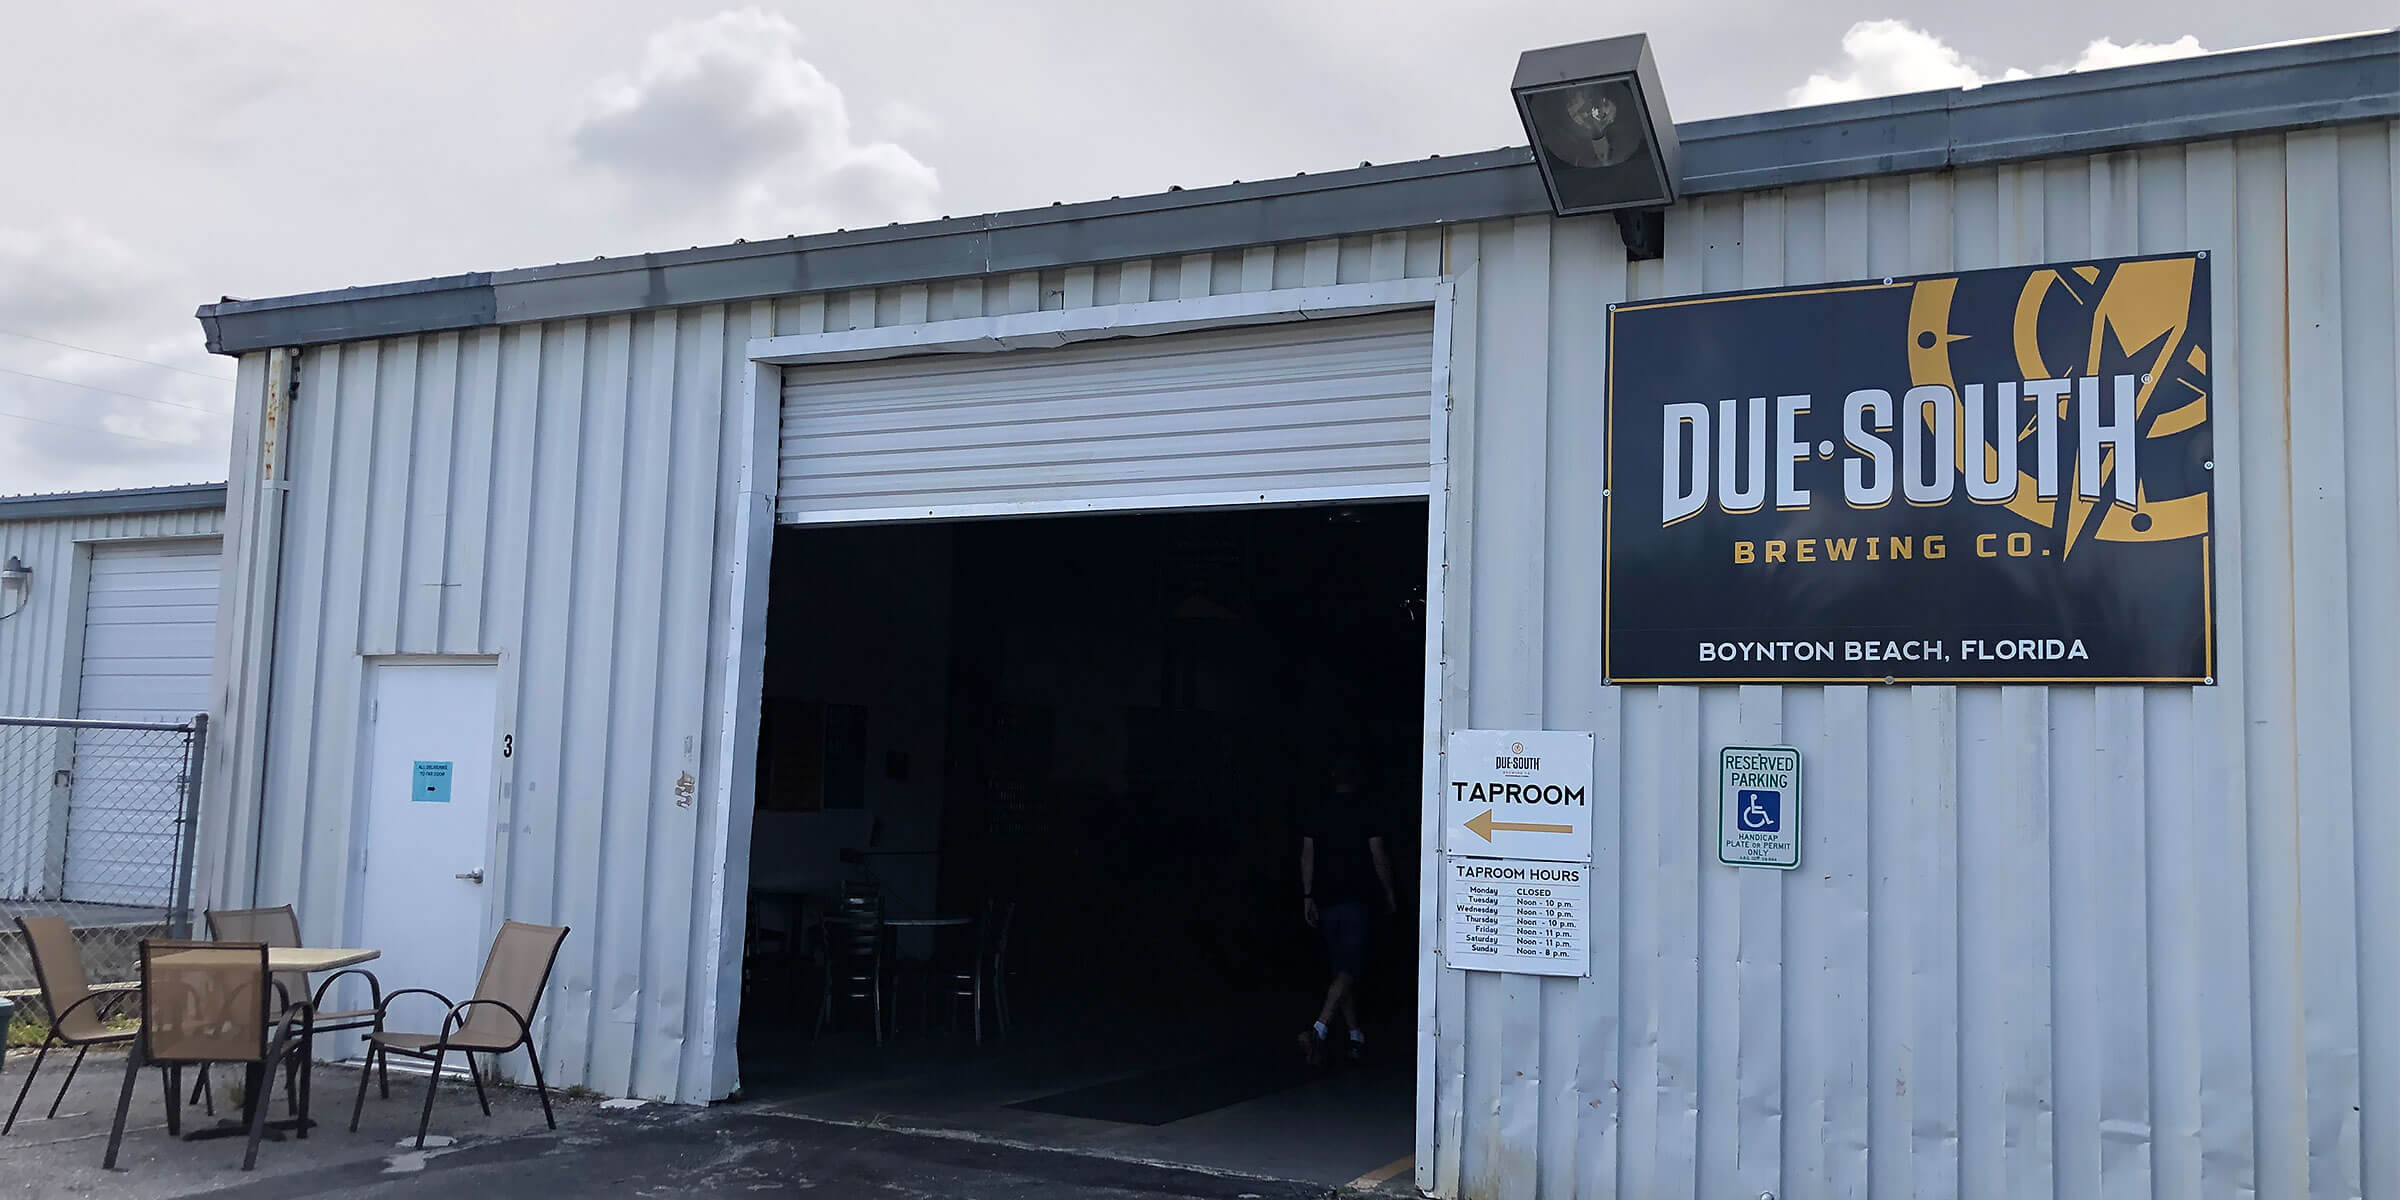 Outside the taproom entrance to Due South Brewing Co. in Boynton Beach, Florida